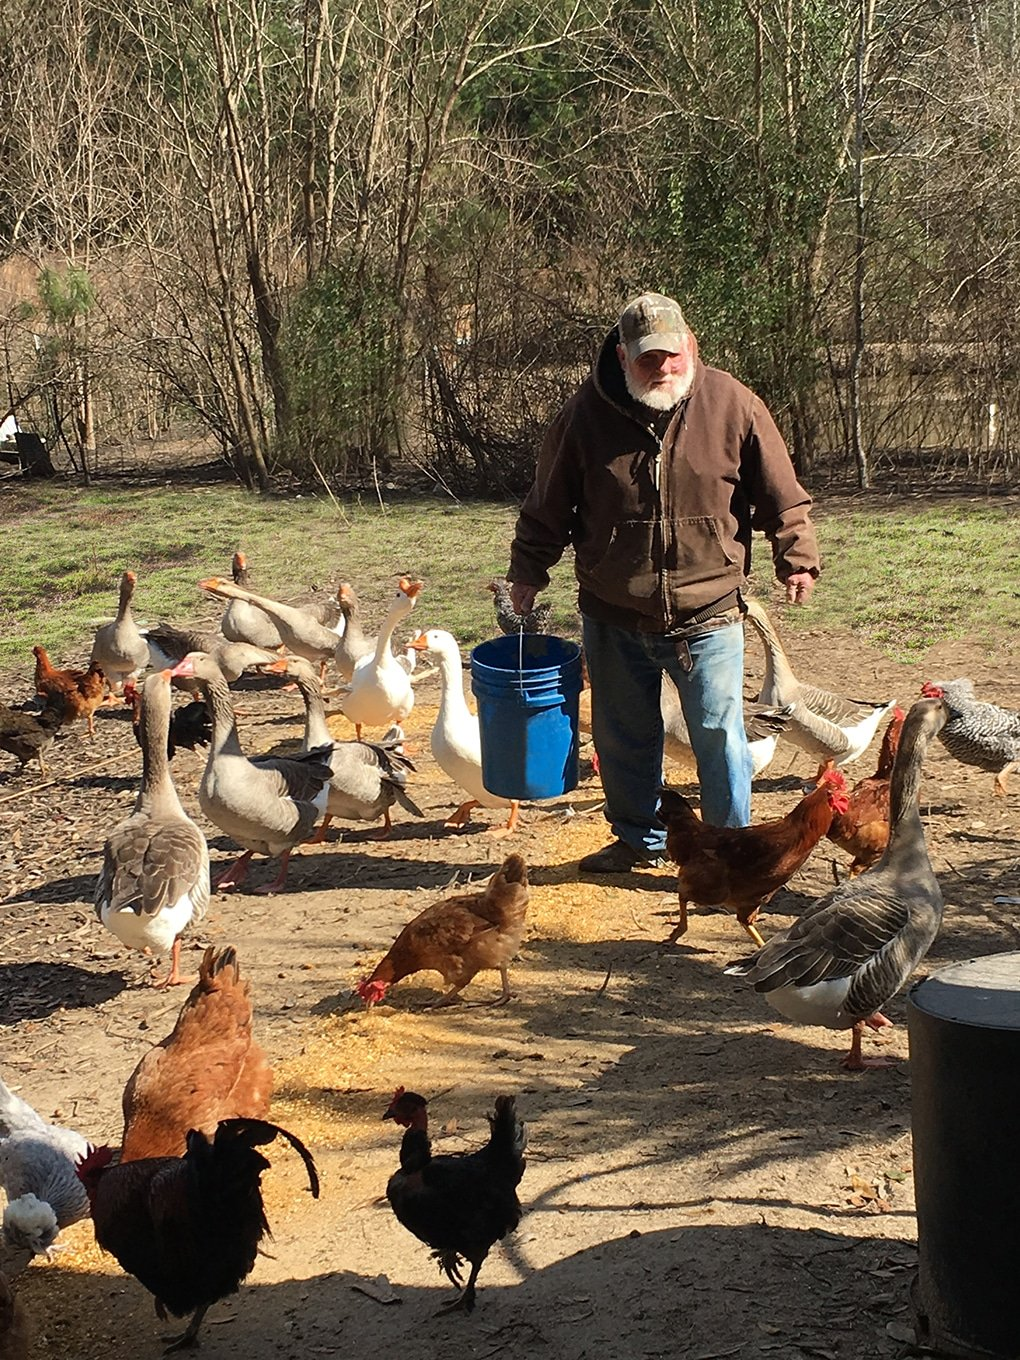 Reggie Rice Grass Feeding Chickens